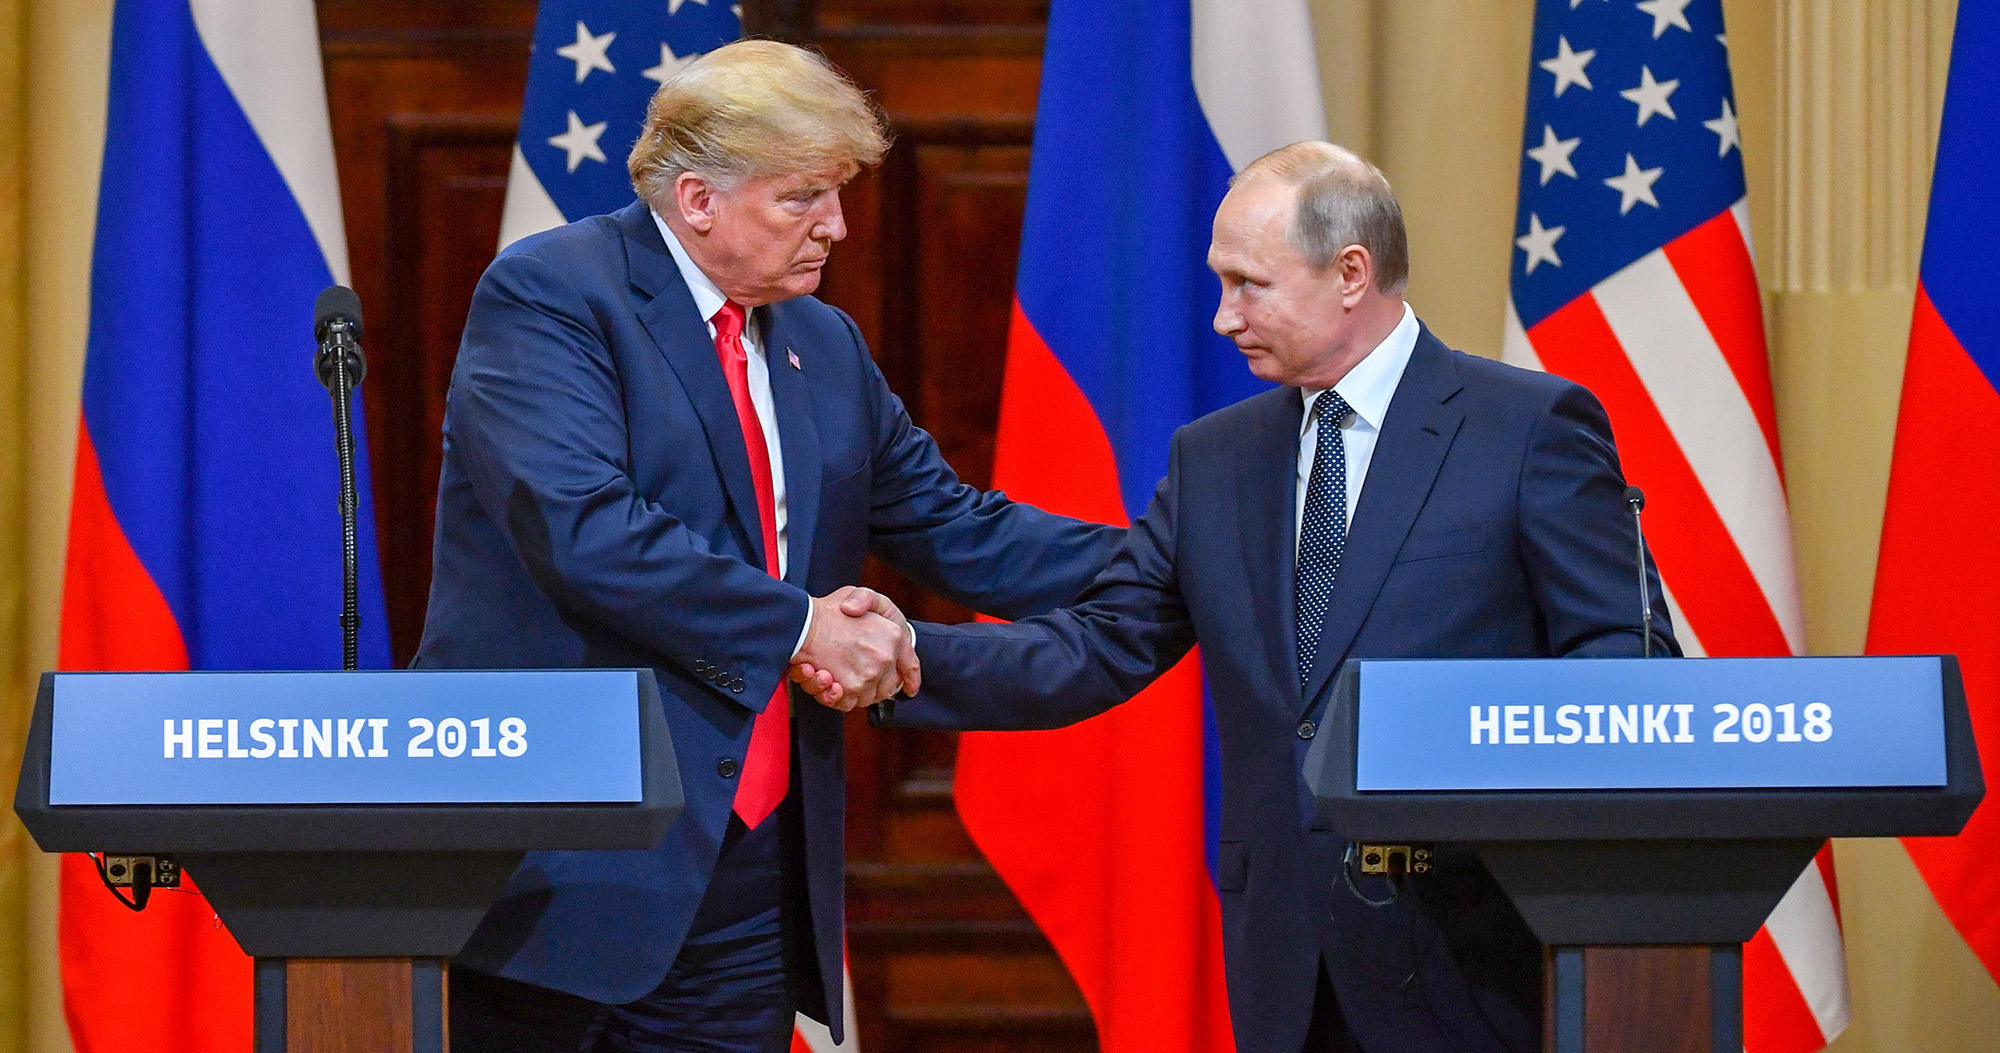 Trump and Putin shaking hands in Helsinki